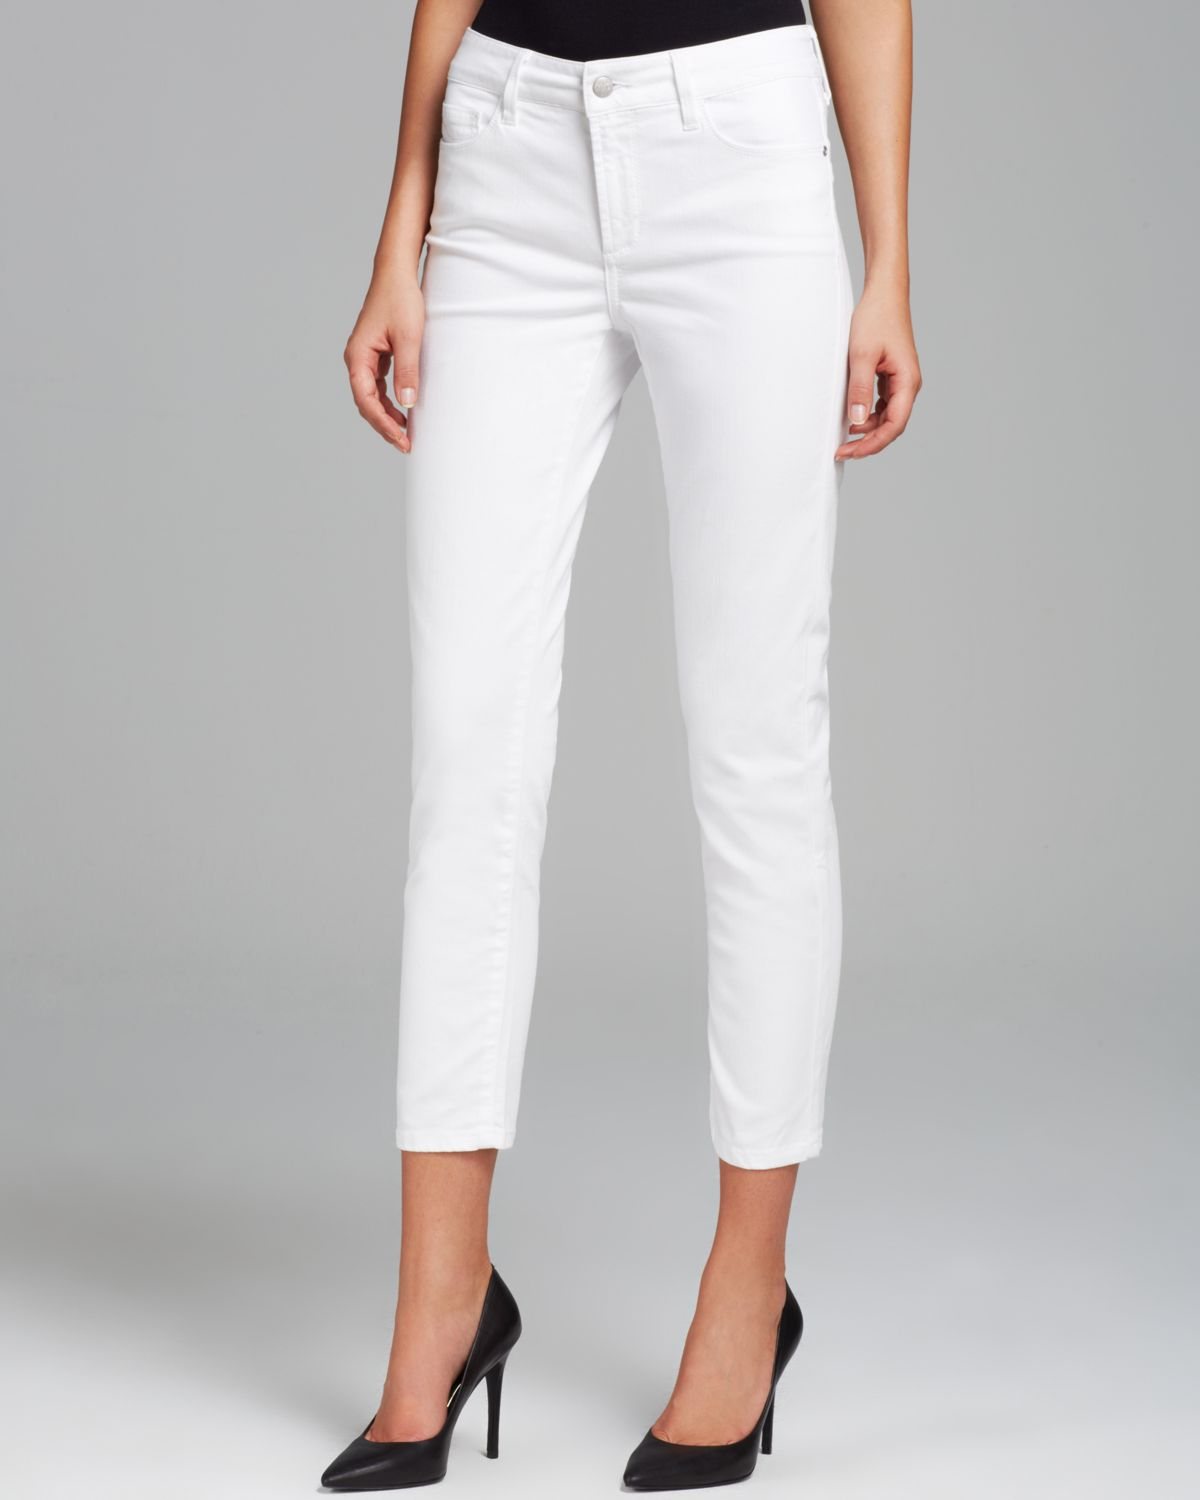 Nydj Alisha Fitted Ankle Jeans in White | Lyst